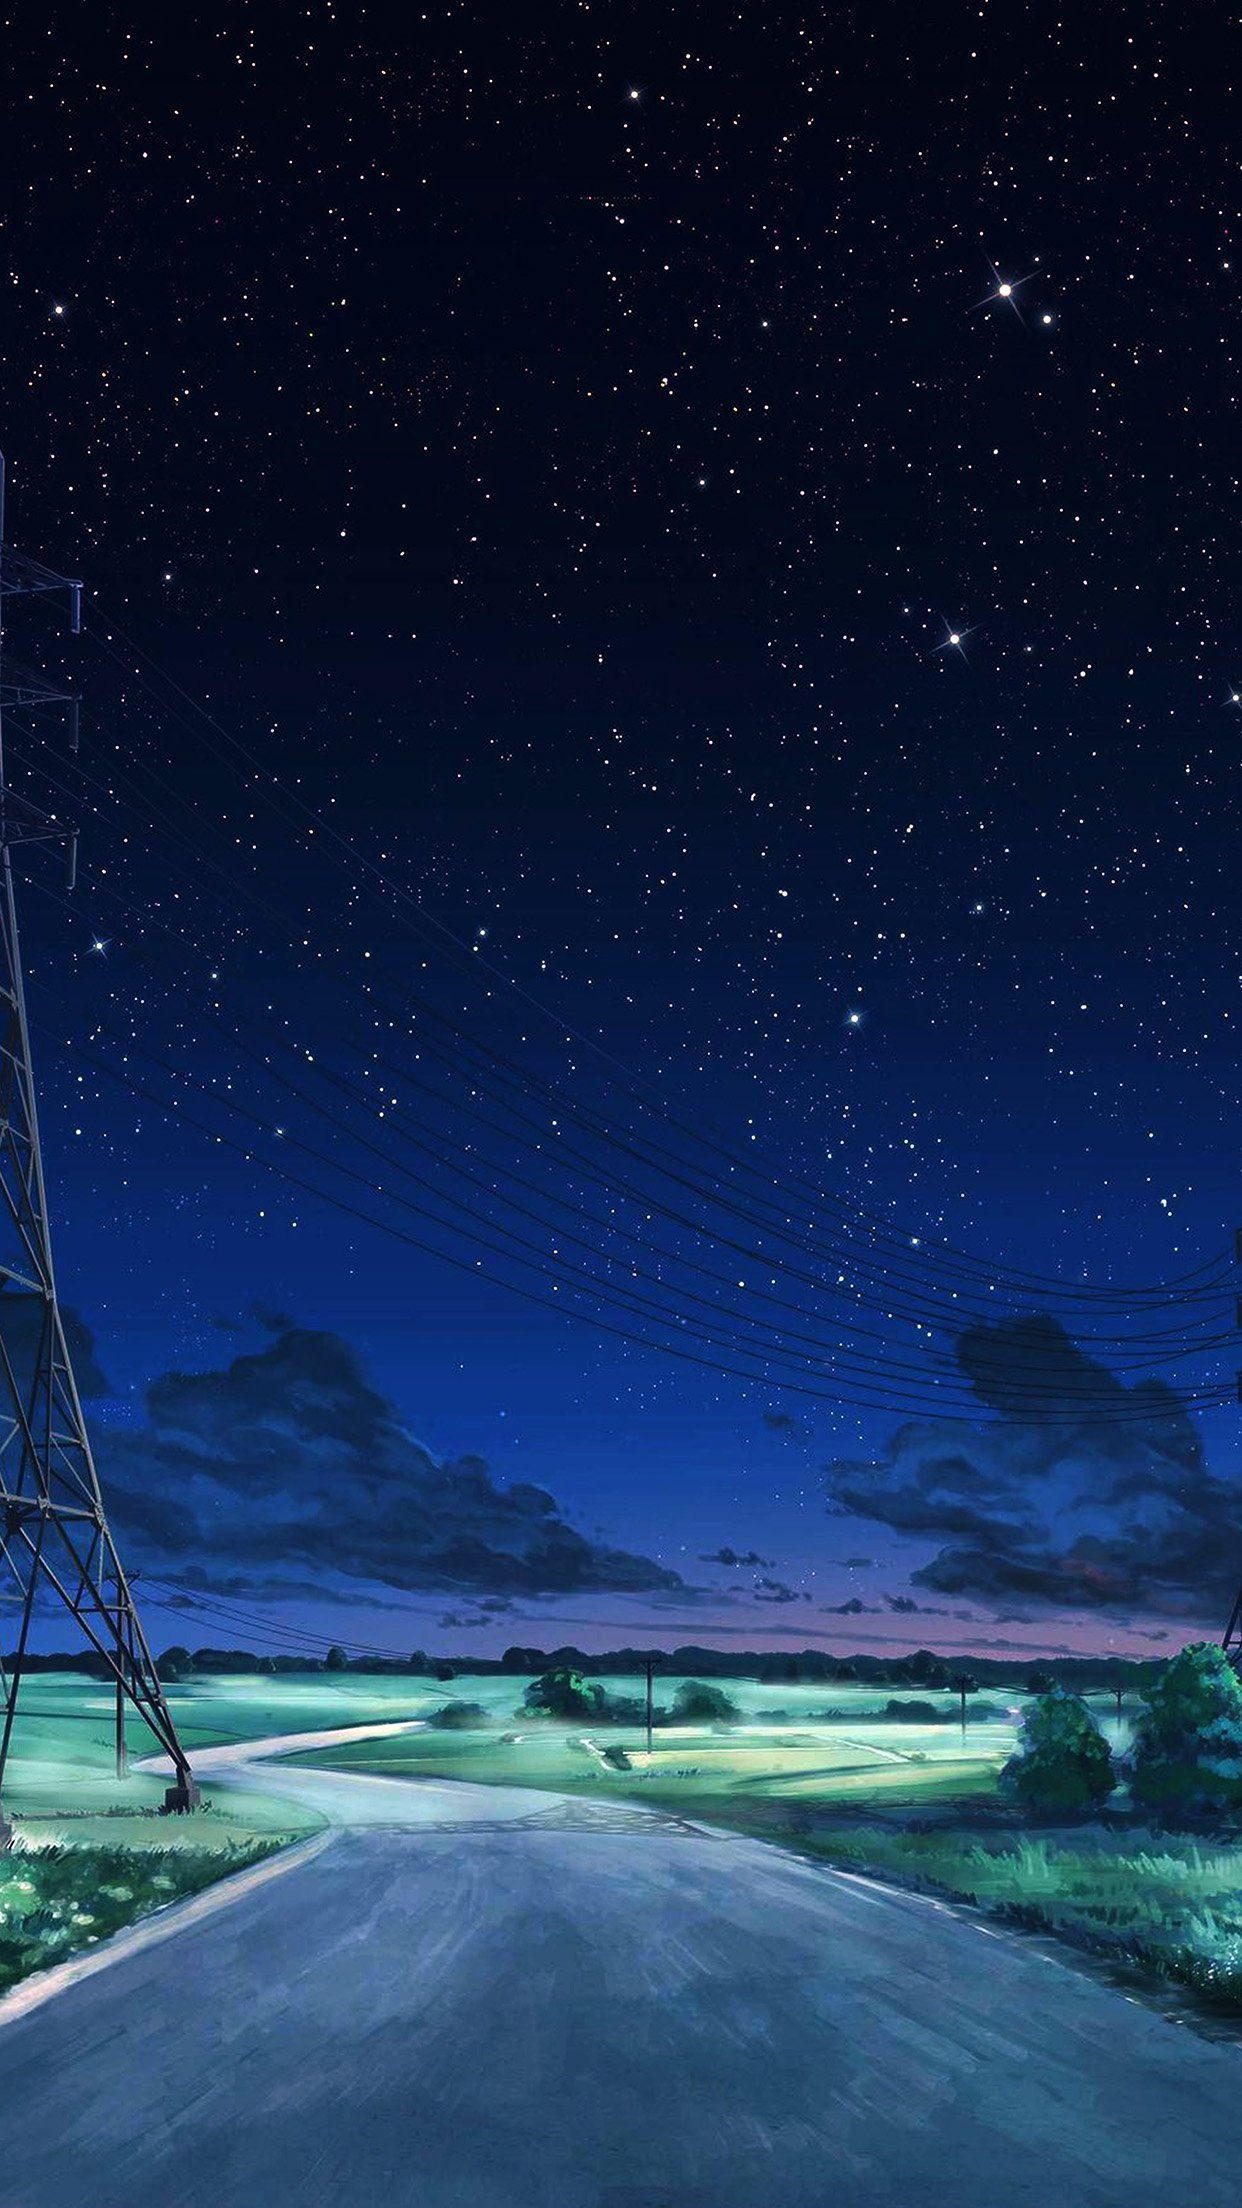 Image Result For Anime Night Sky Night Sky Wallpaper Sky Anime